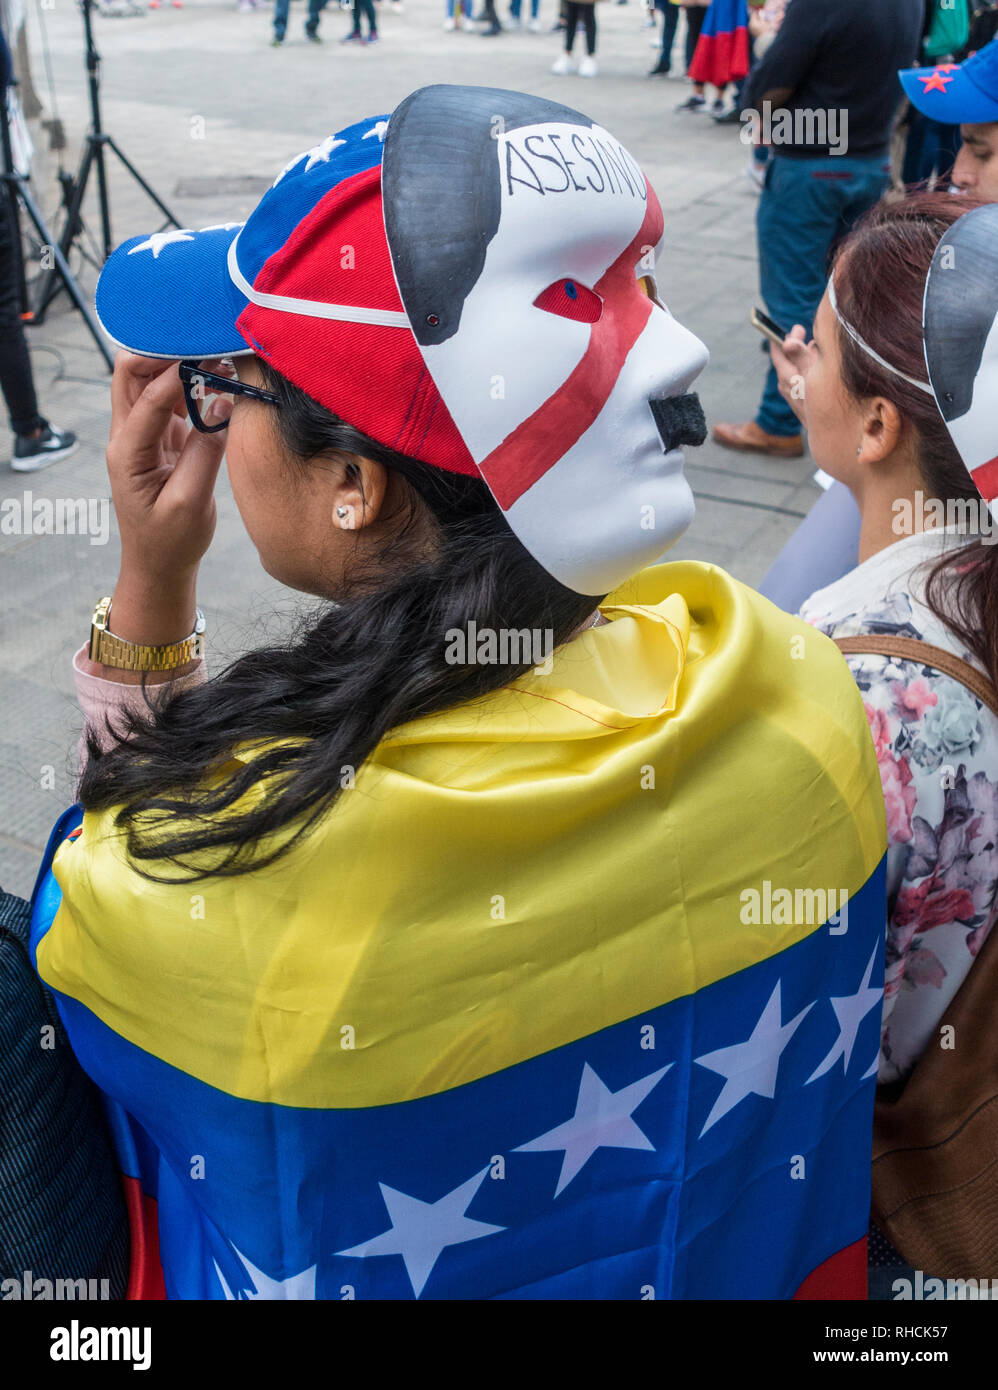 Las Palmas, Gran Canaria, Canary Islands, Spain. 2nd February 2019. Venezuelans living in the Canary Islands join thousands of fellow Venezuelans around the world calling for Nicolas Maduro to step down. PICTURED: A demonstrator wearing a Nicolas Maduro mask with murderer written on it. Credit: ALAN DAWSON/Alamy Live News - Stock Image